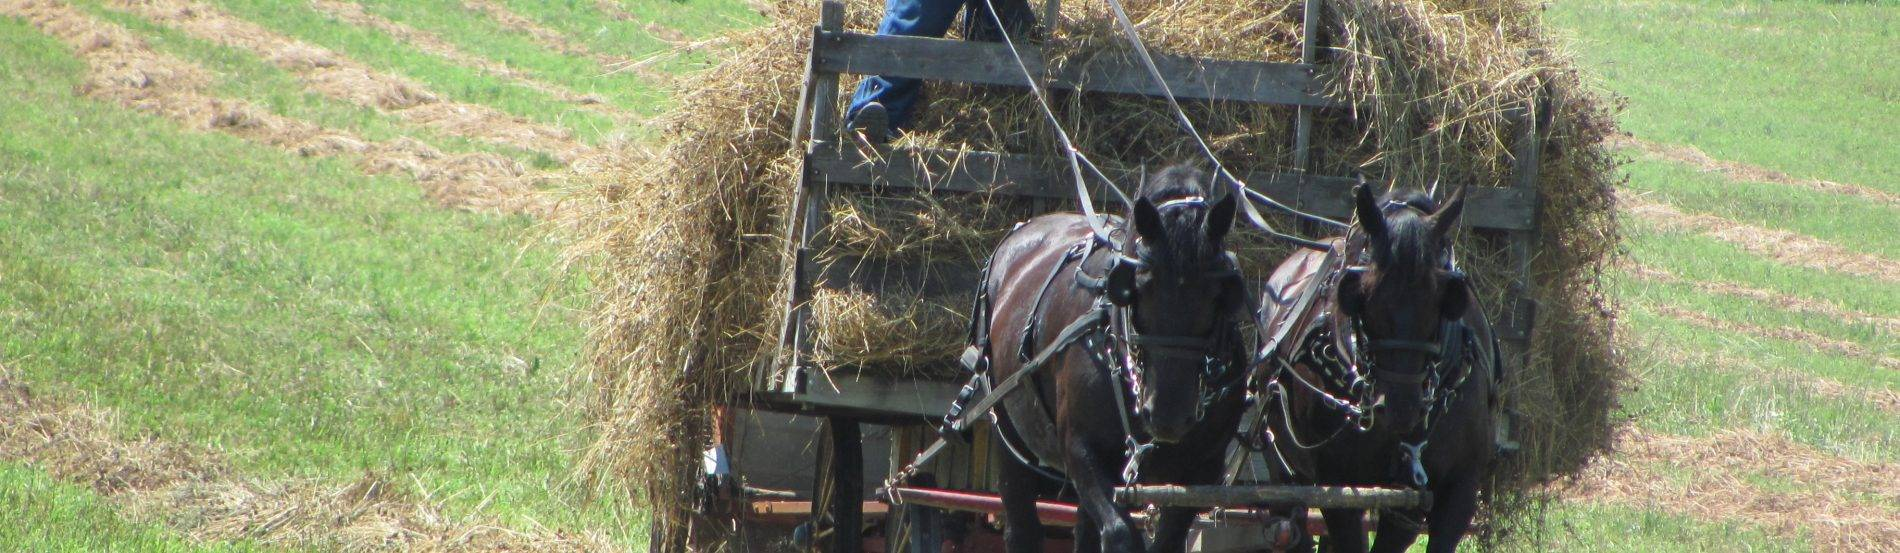 Bringing in hay on a warm day.